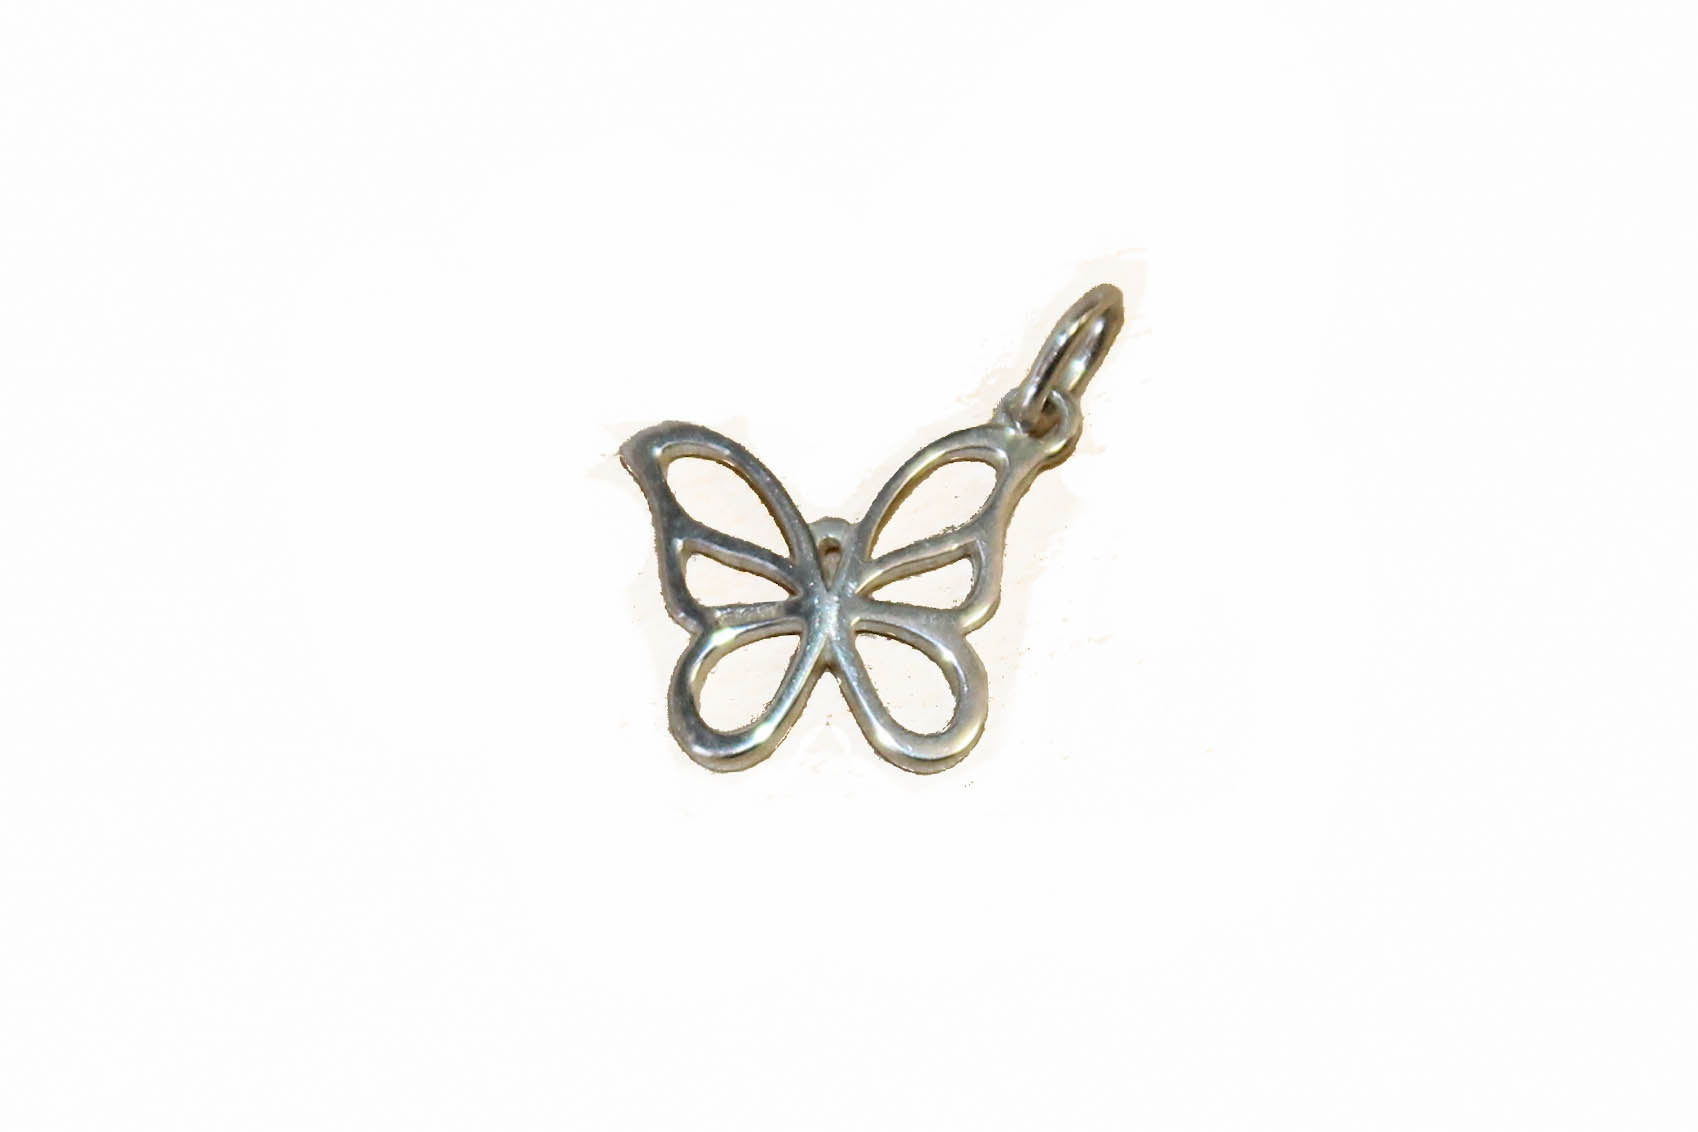 Authentic Tiffany & Co. Sterling Silver Butterfly Pendant